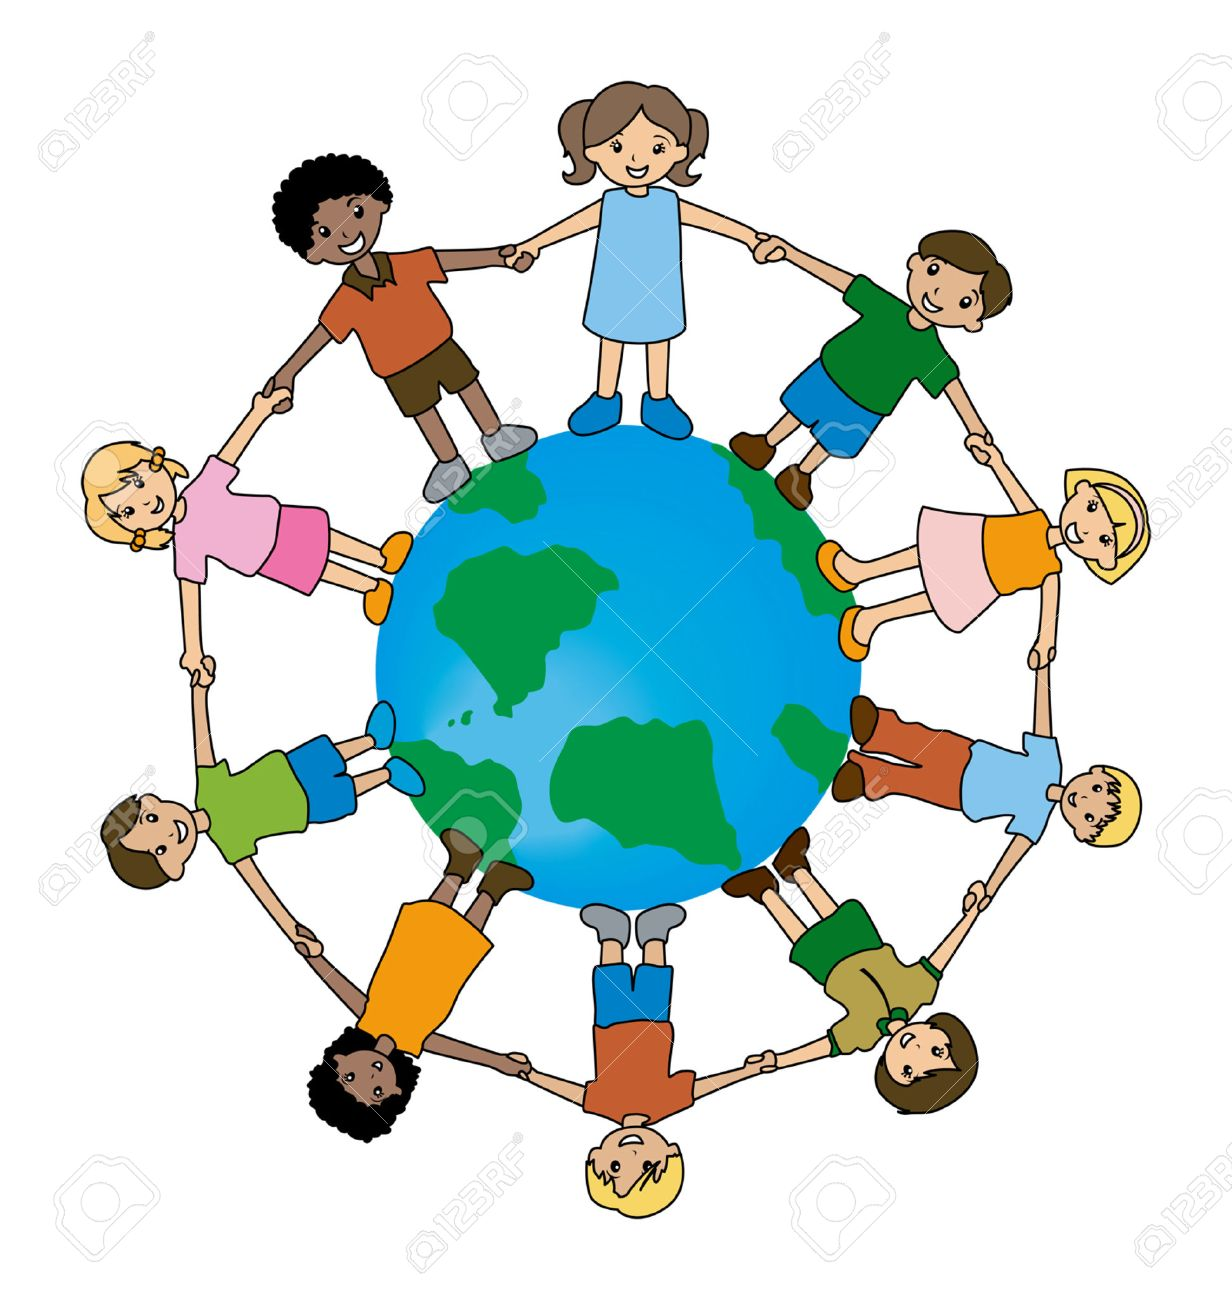 illustration of kids around the world royalty free cliparts vectors rh 123rf com Multicultural Clip Art From around the World Food around the World Clip Art